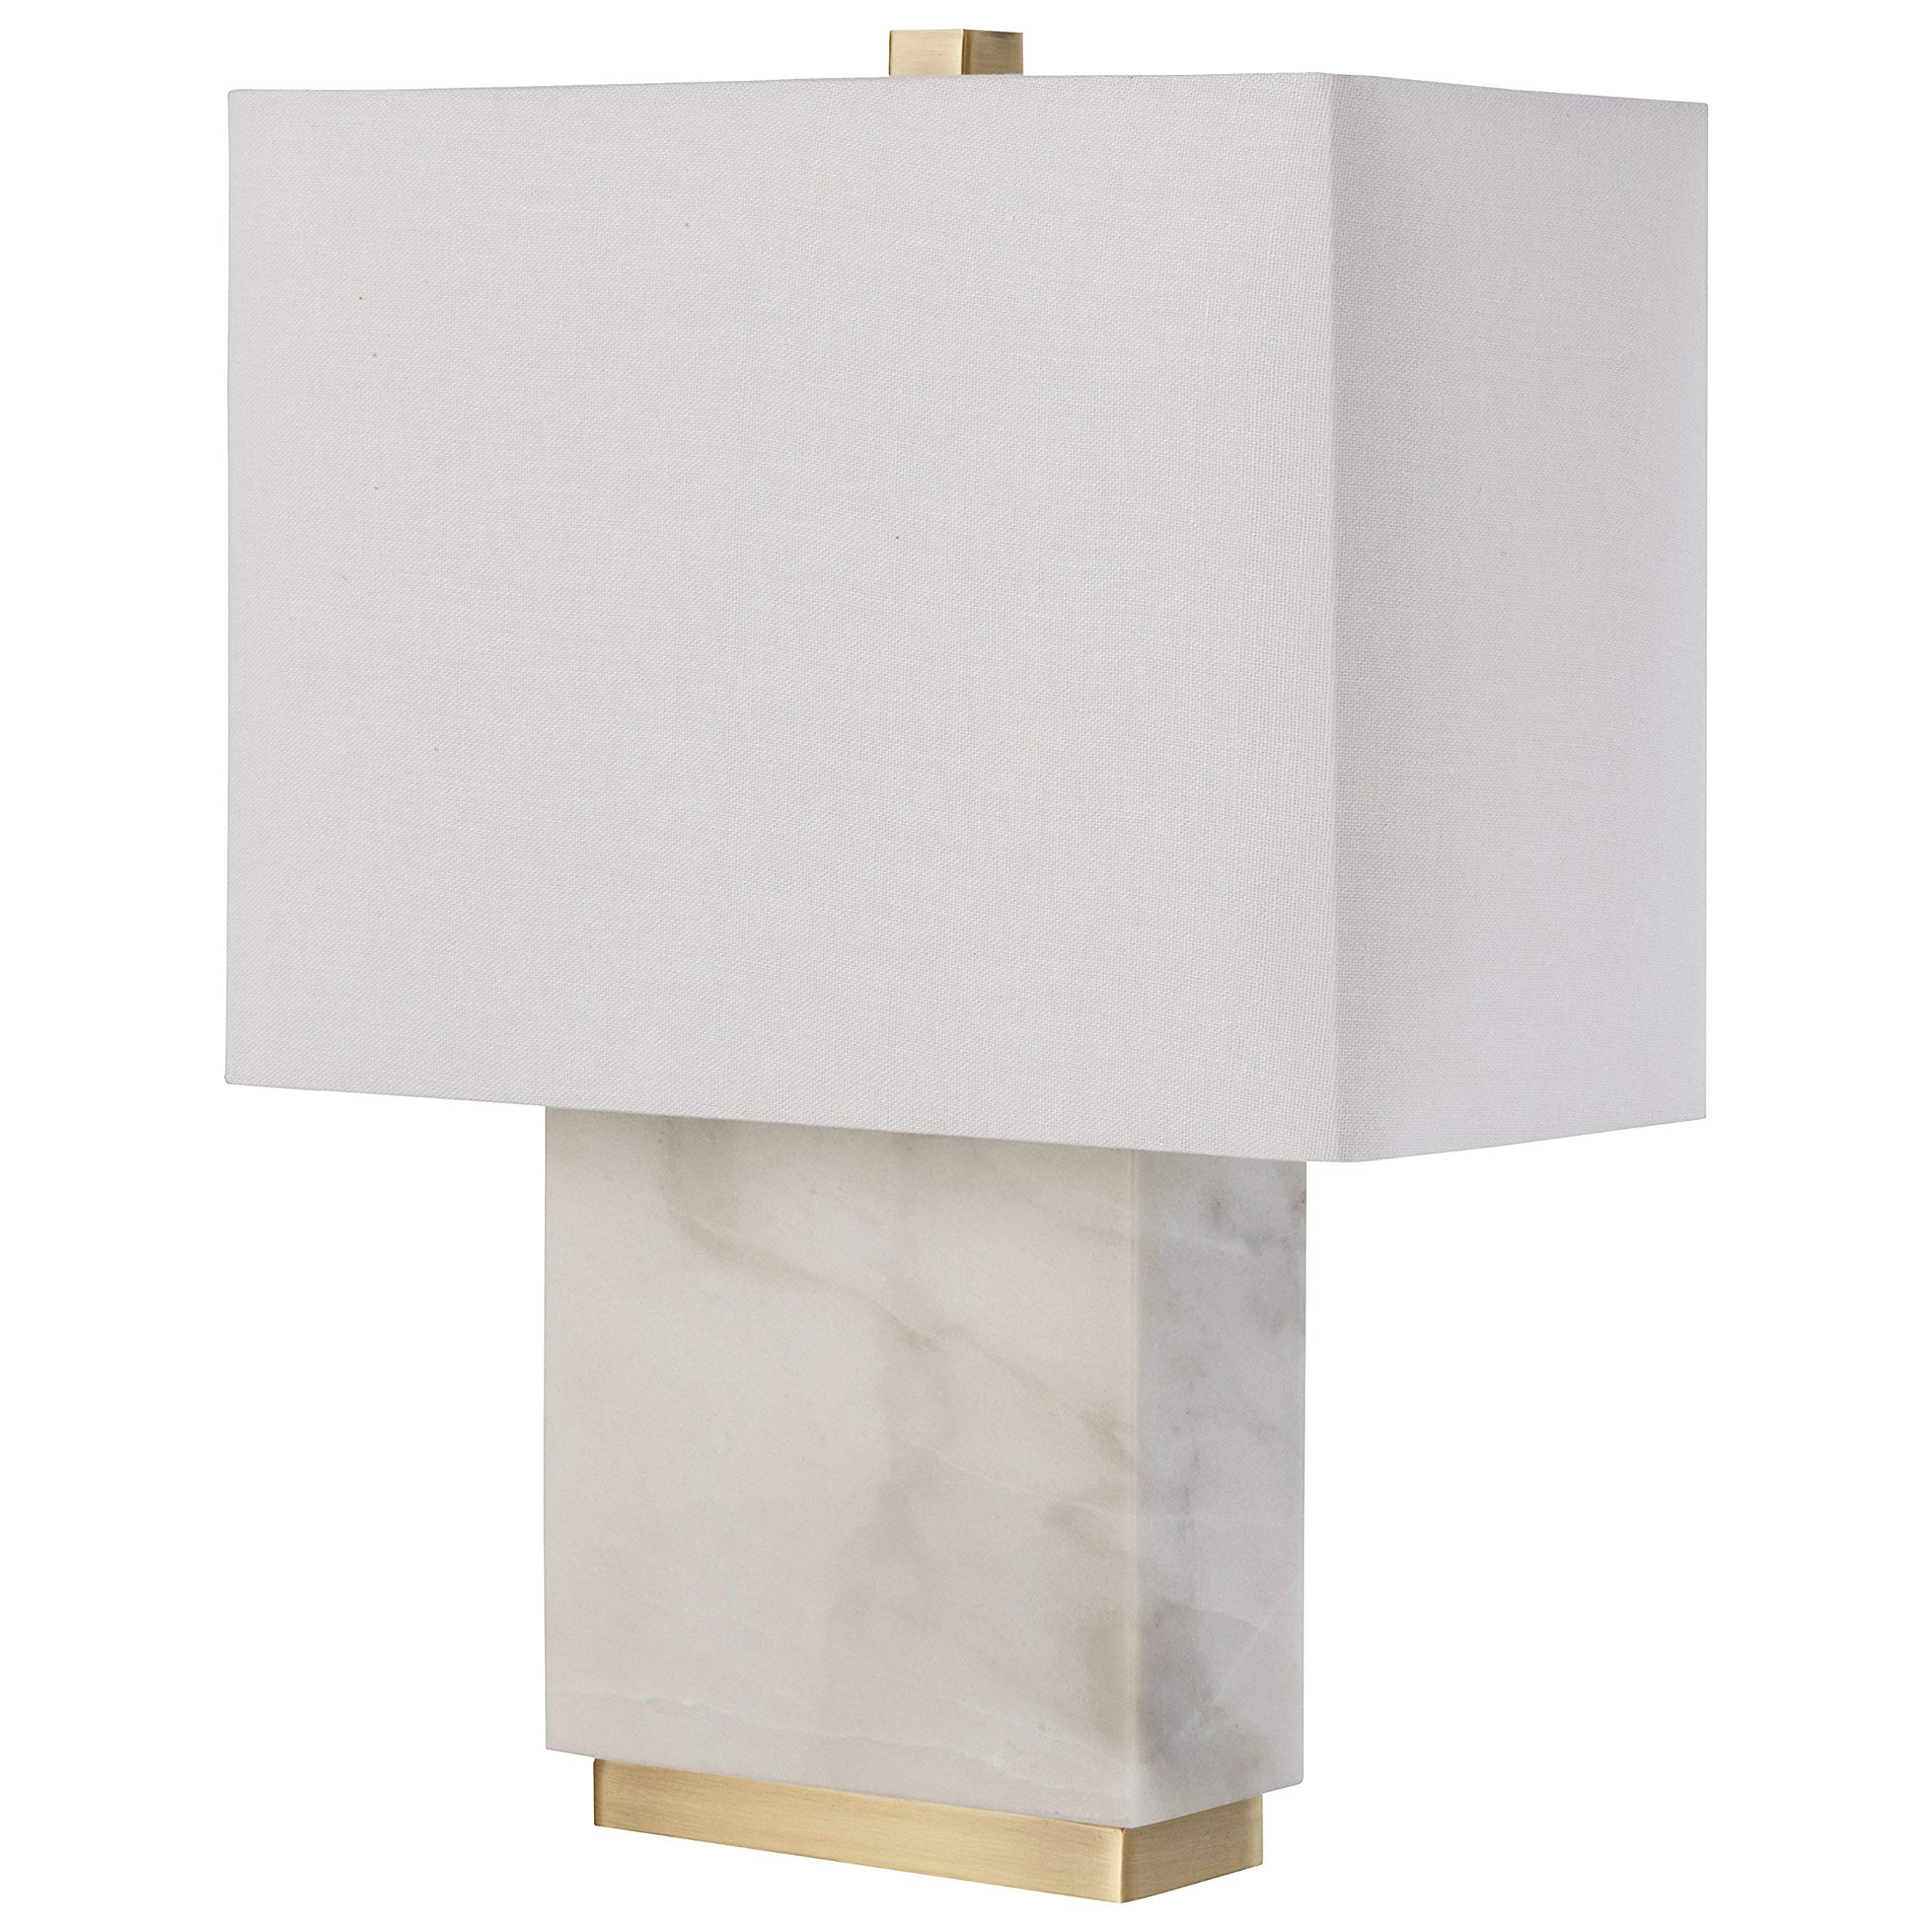 Rivet Mid-Century Modern Rectangle Living Room Table Lamp With LED Light Bulb - 13.5 x 6.5 x 17 Inches, White Marble and Brass